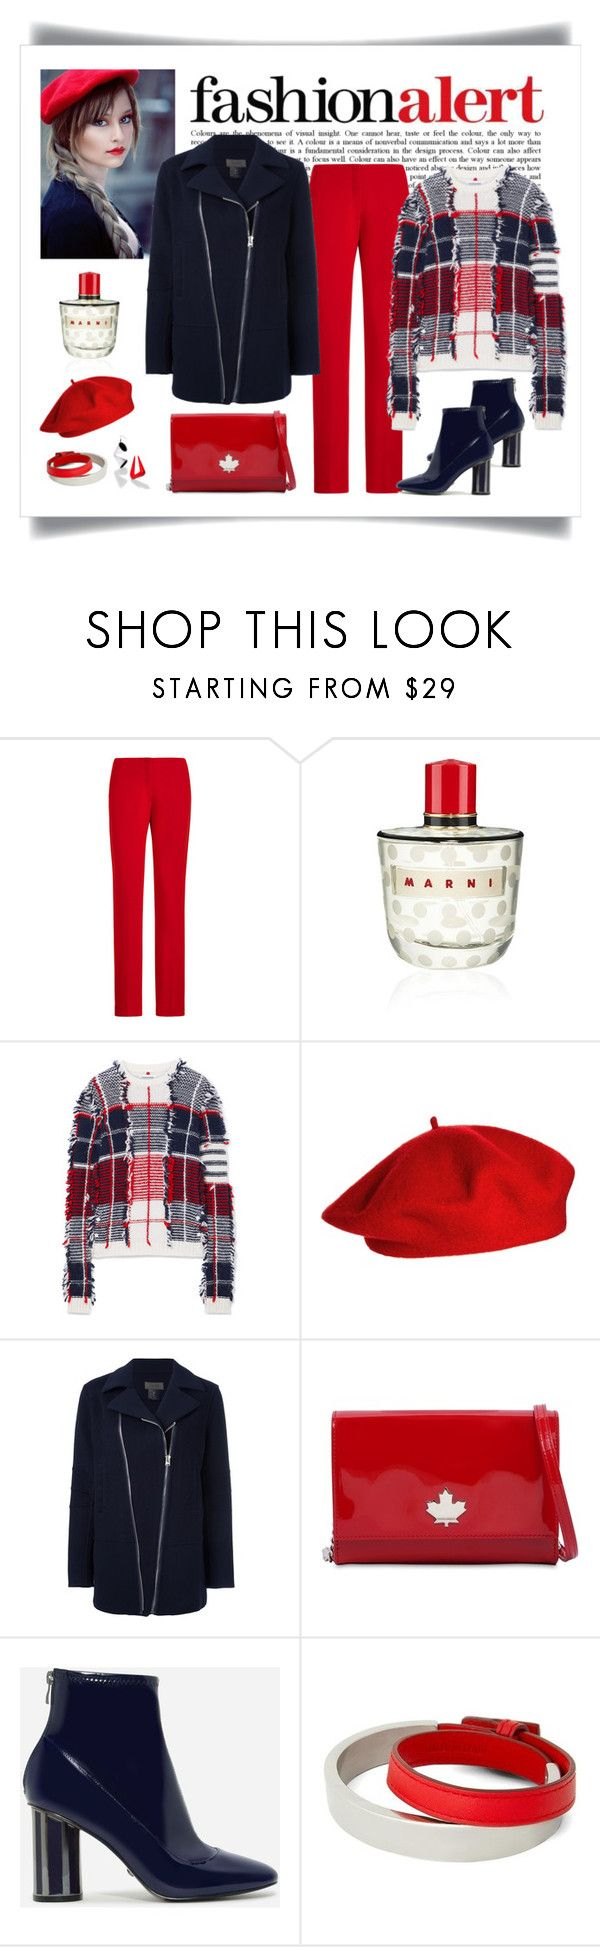 """""""Thom Browne Plaid Frayed Intarsia Sweater Look"""" by romaboots-1 ❤ liked on Polyvore featuring Ralph Lauren, Marni, Thom Browne, ASOS, TonyCohen, Dsquared2, CHARLES & KEITH, Loewe and STELLA McCARTNEY"""